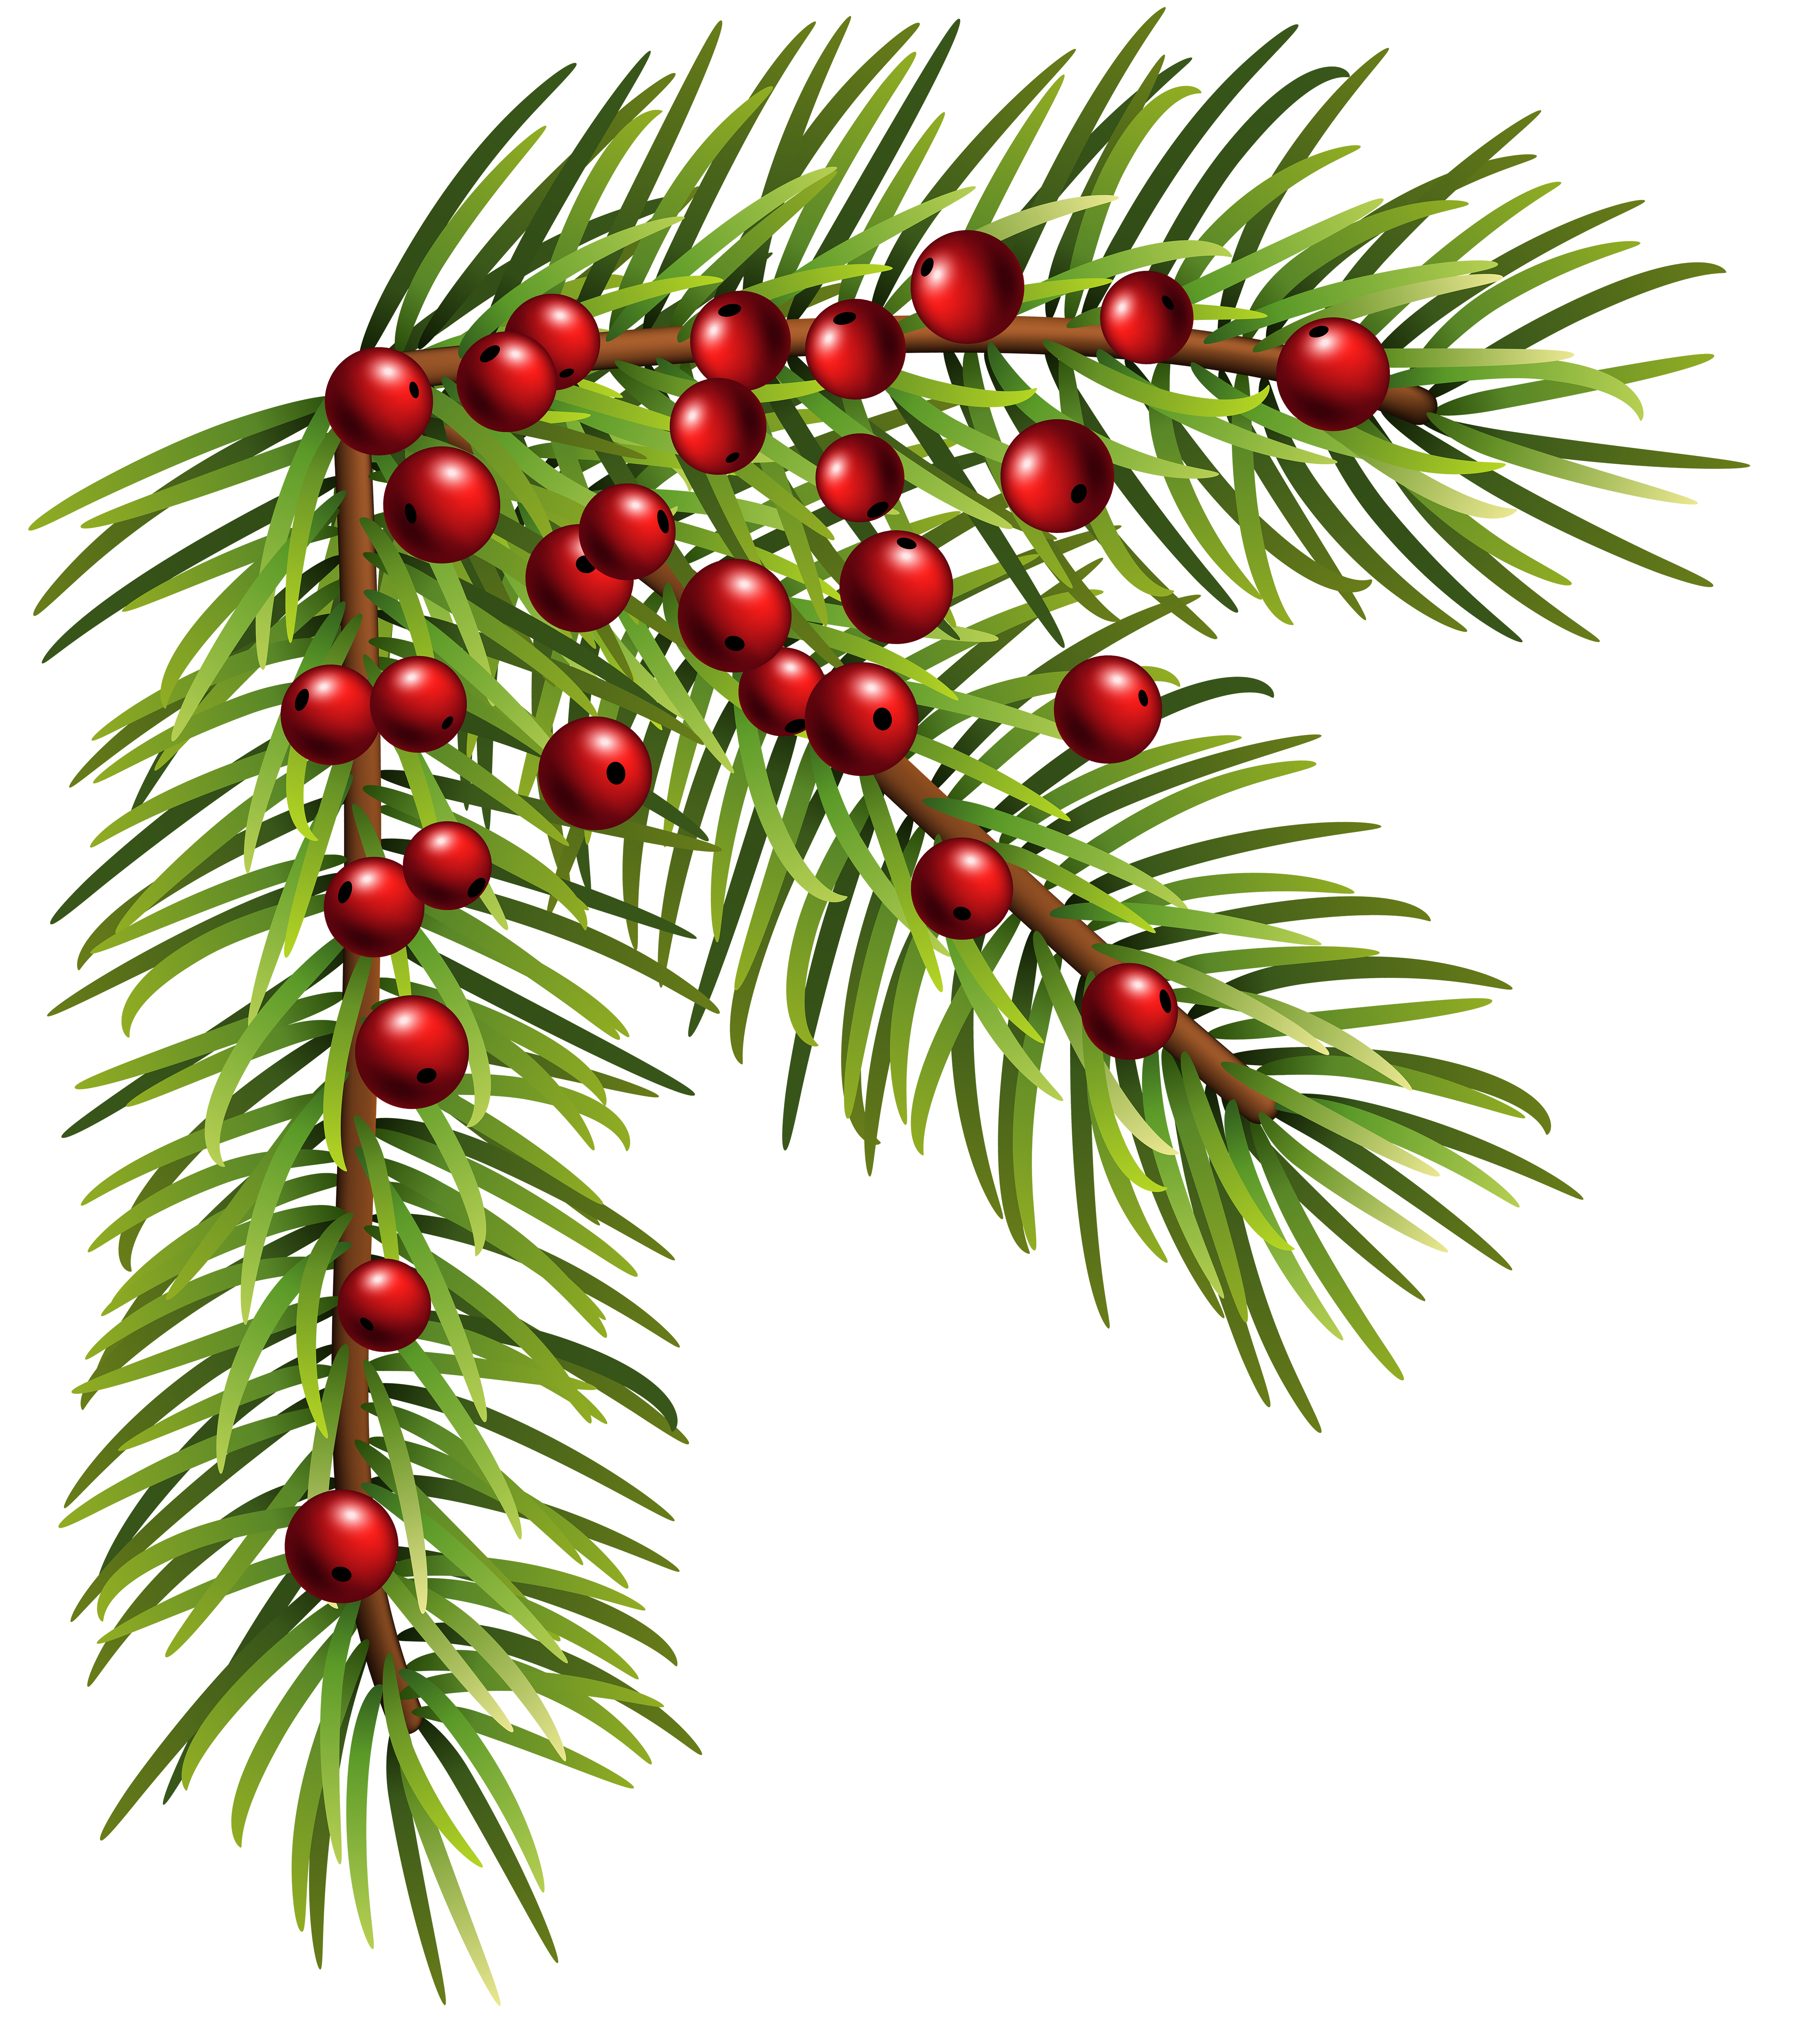 Christmas corner clipart picture royalty free library Christmas Pine Corner PNG Clip Art Image | Gallery Yopriceville ... picture royalty free library